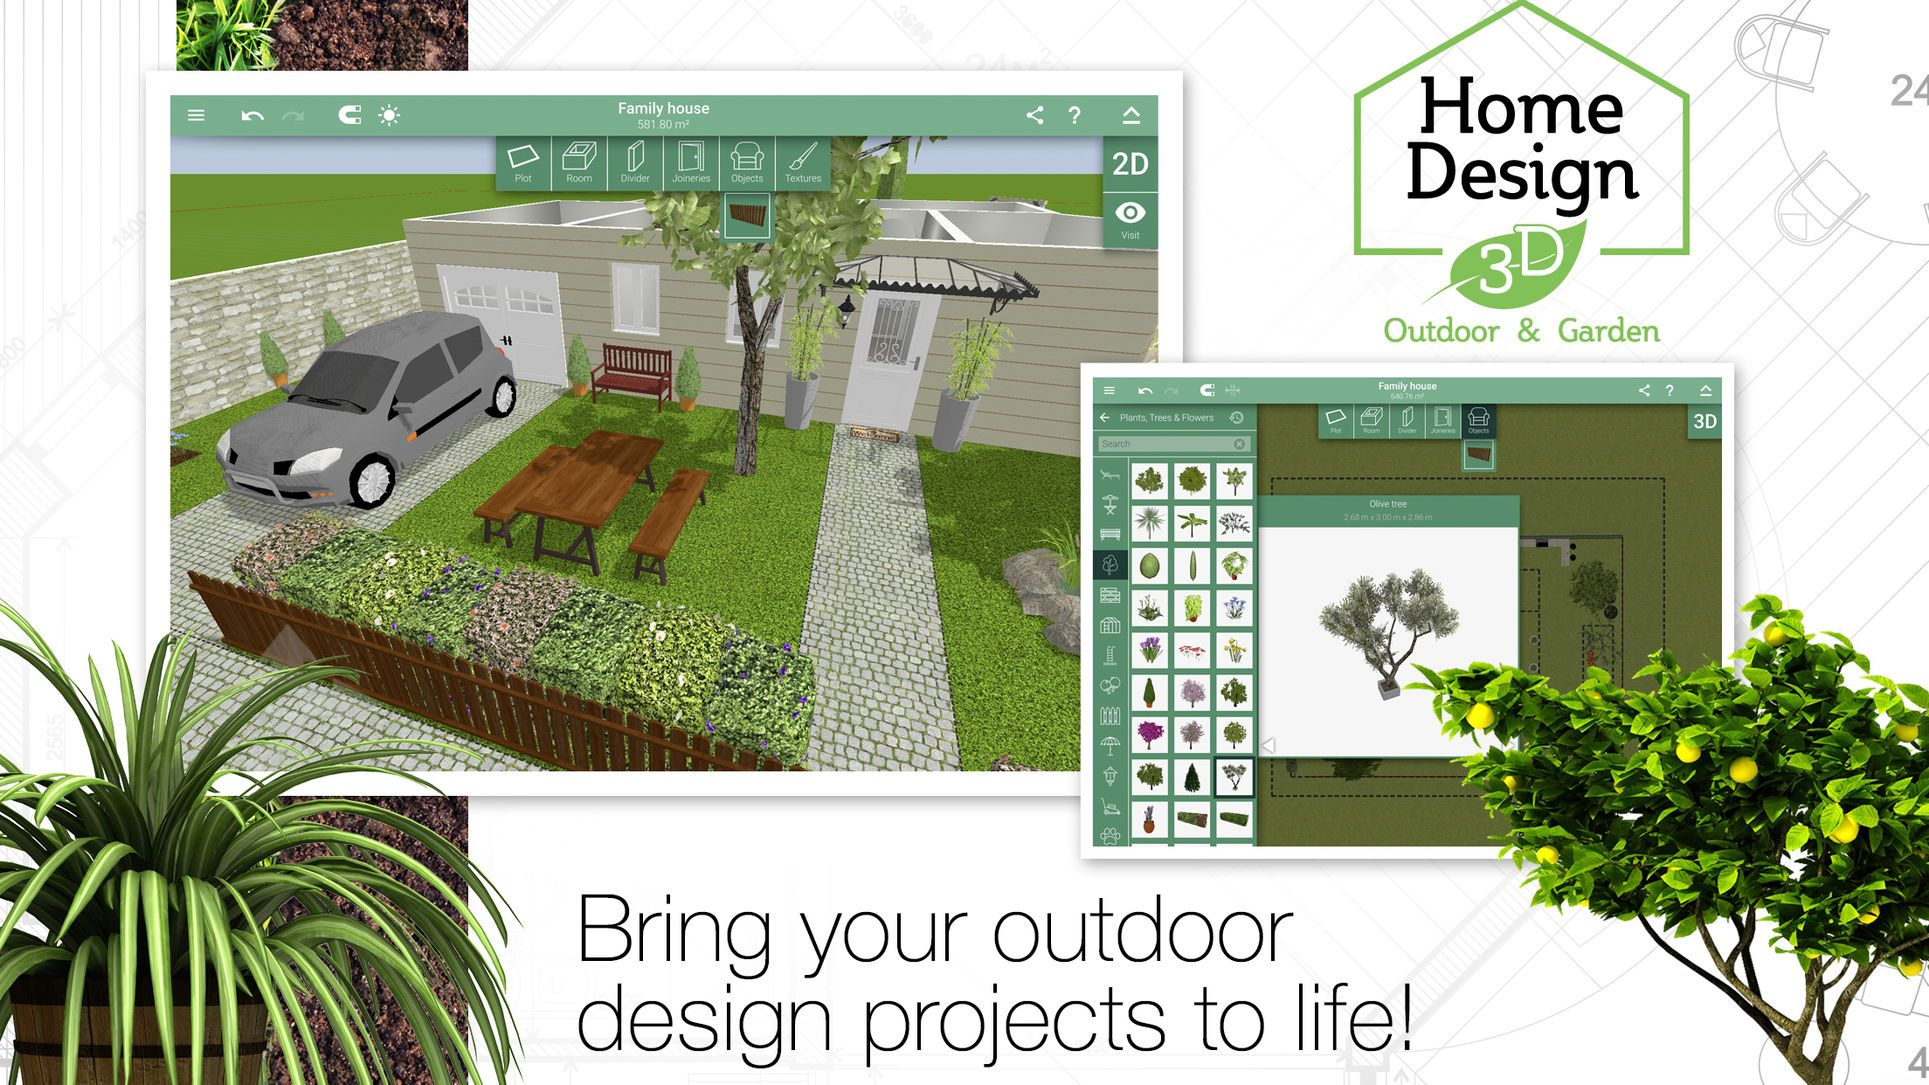 Home Design 3d Outdoor And Garden Lifestyle Productivity Apps Ios Garden Design Software Landscape Design Software Free Garden Design Software